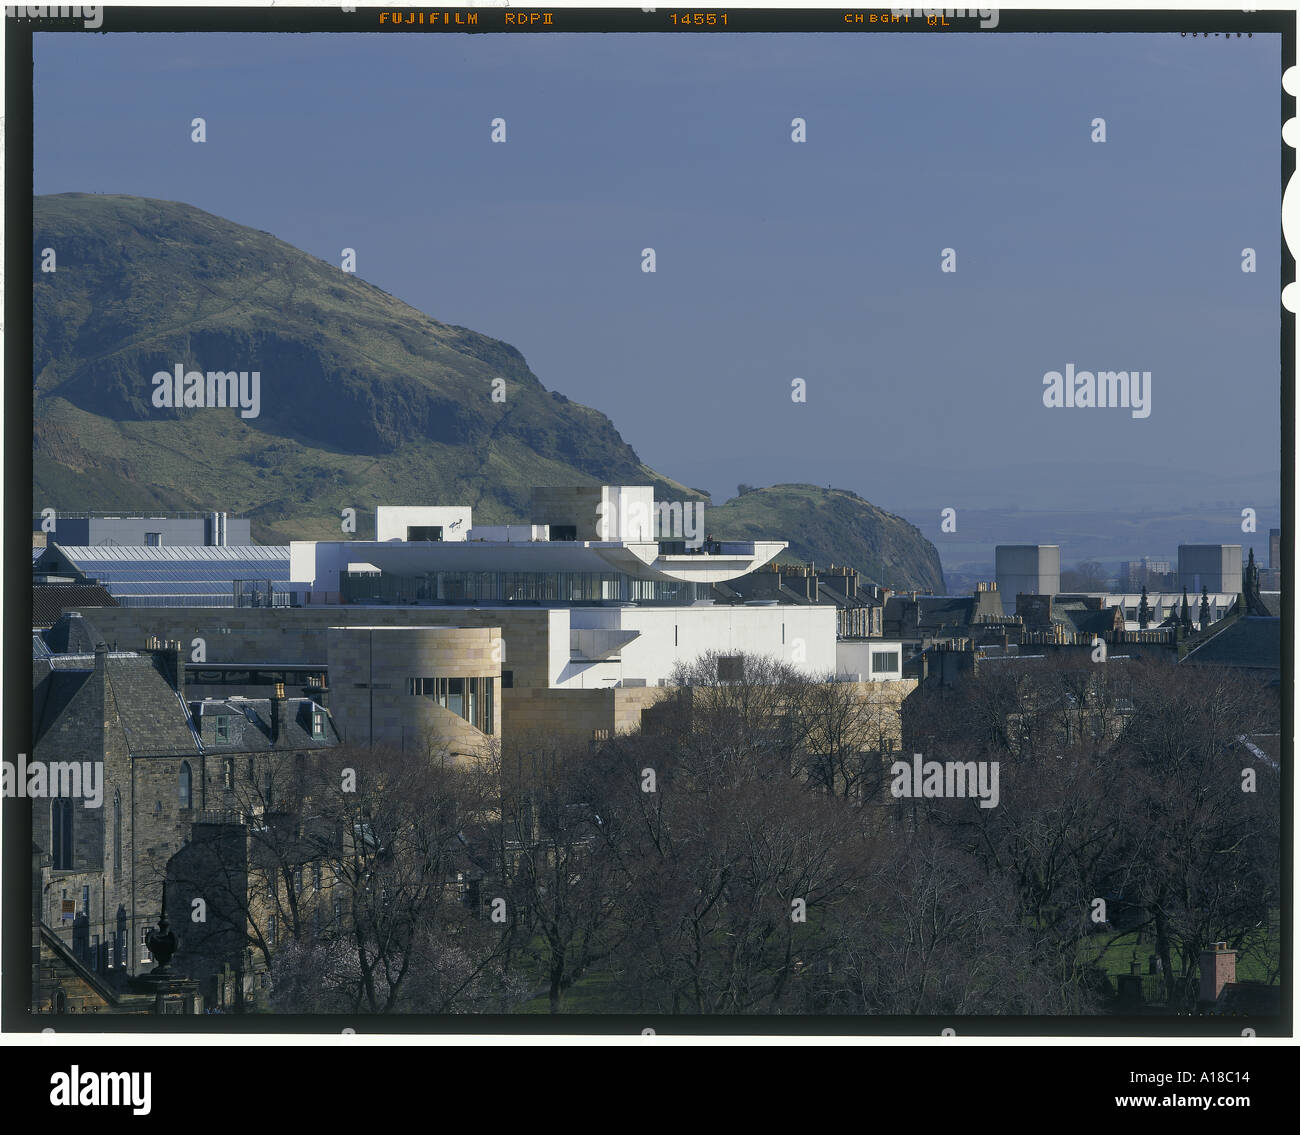 Museum of Scotland, Edinburgh - townscape, view from the castle. Architect: Benson Forsyth - Stock Image